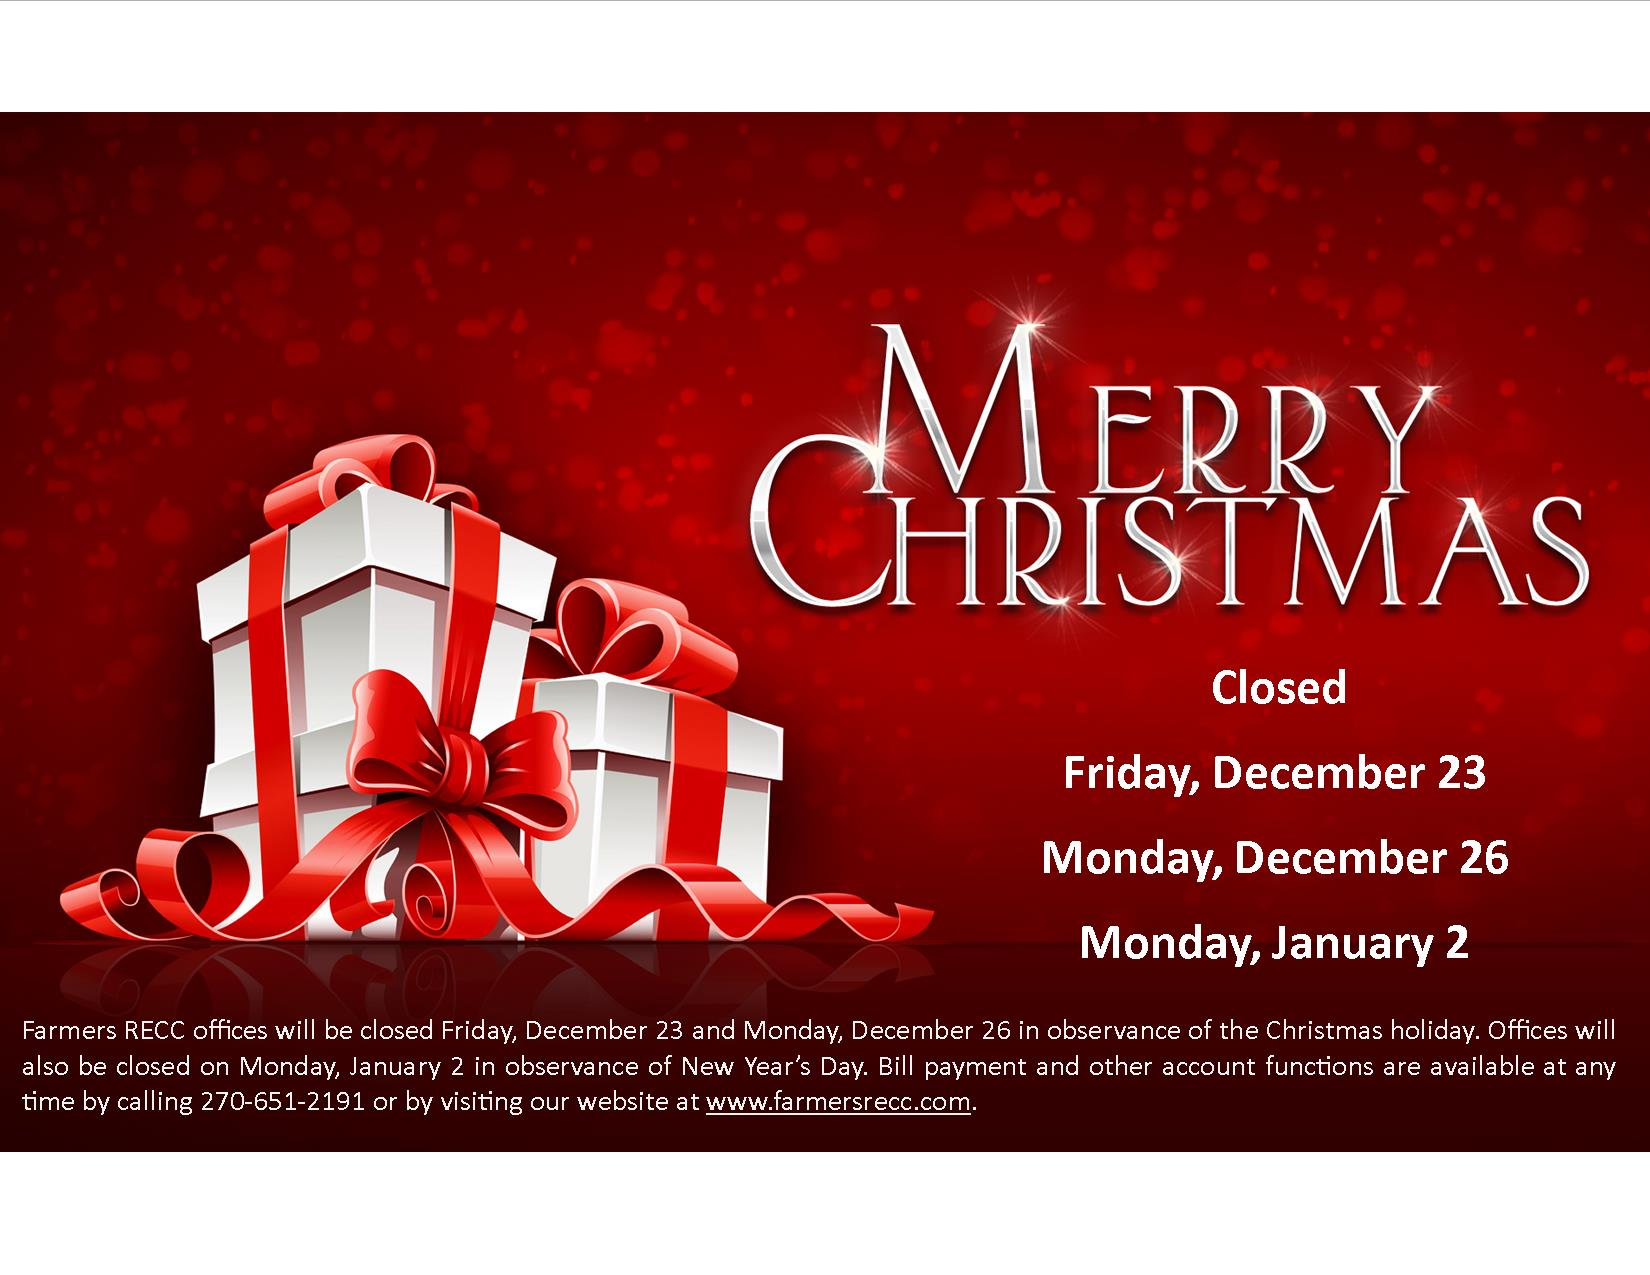 Merry Christmas Farmers Rural Electric Cooperative Corporation